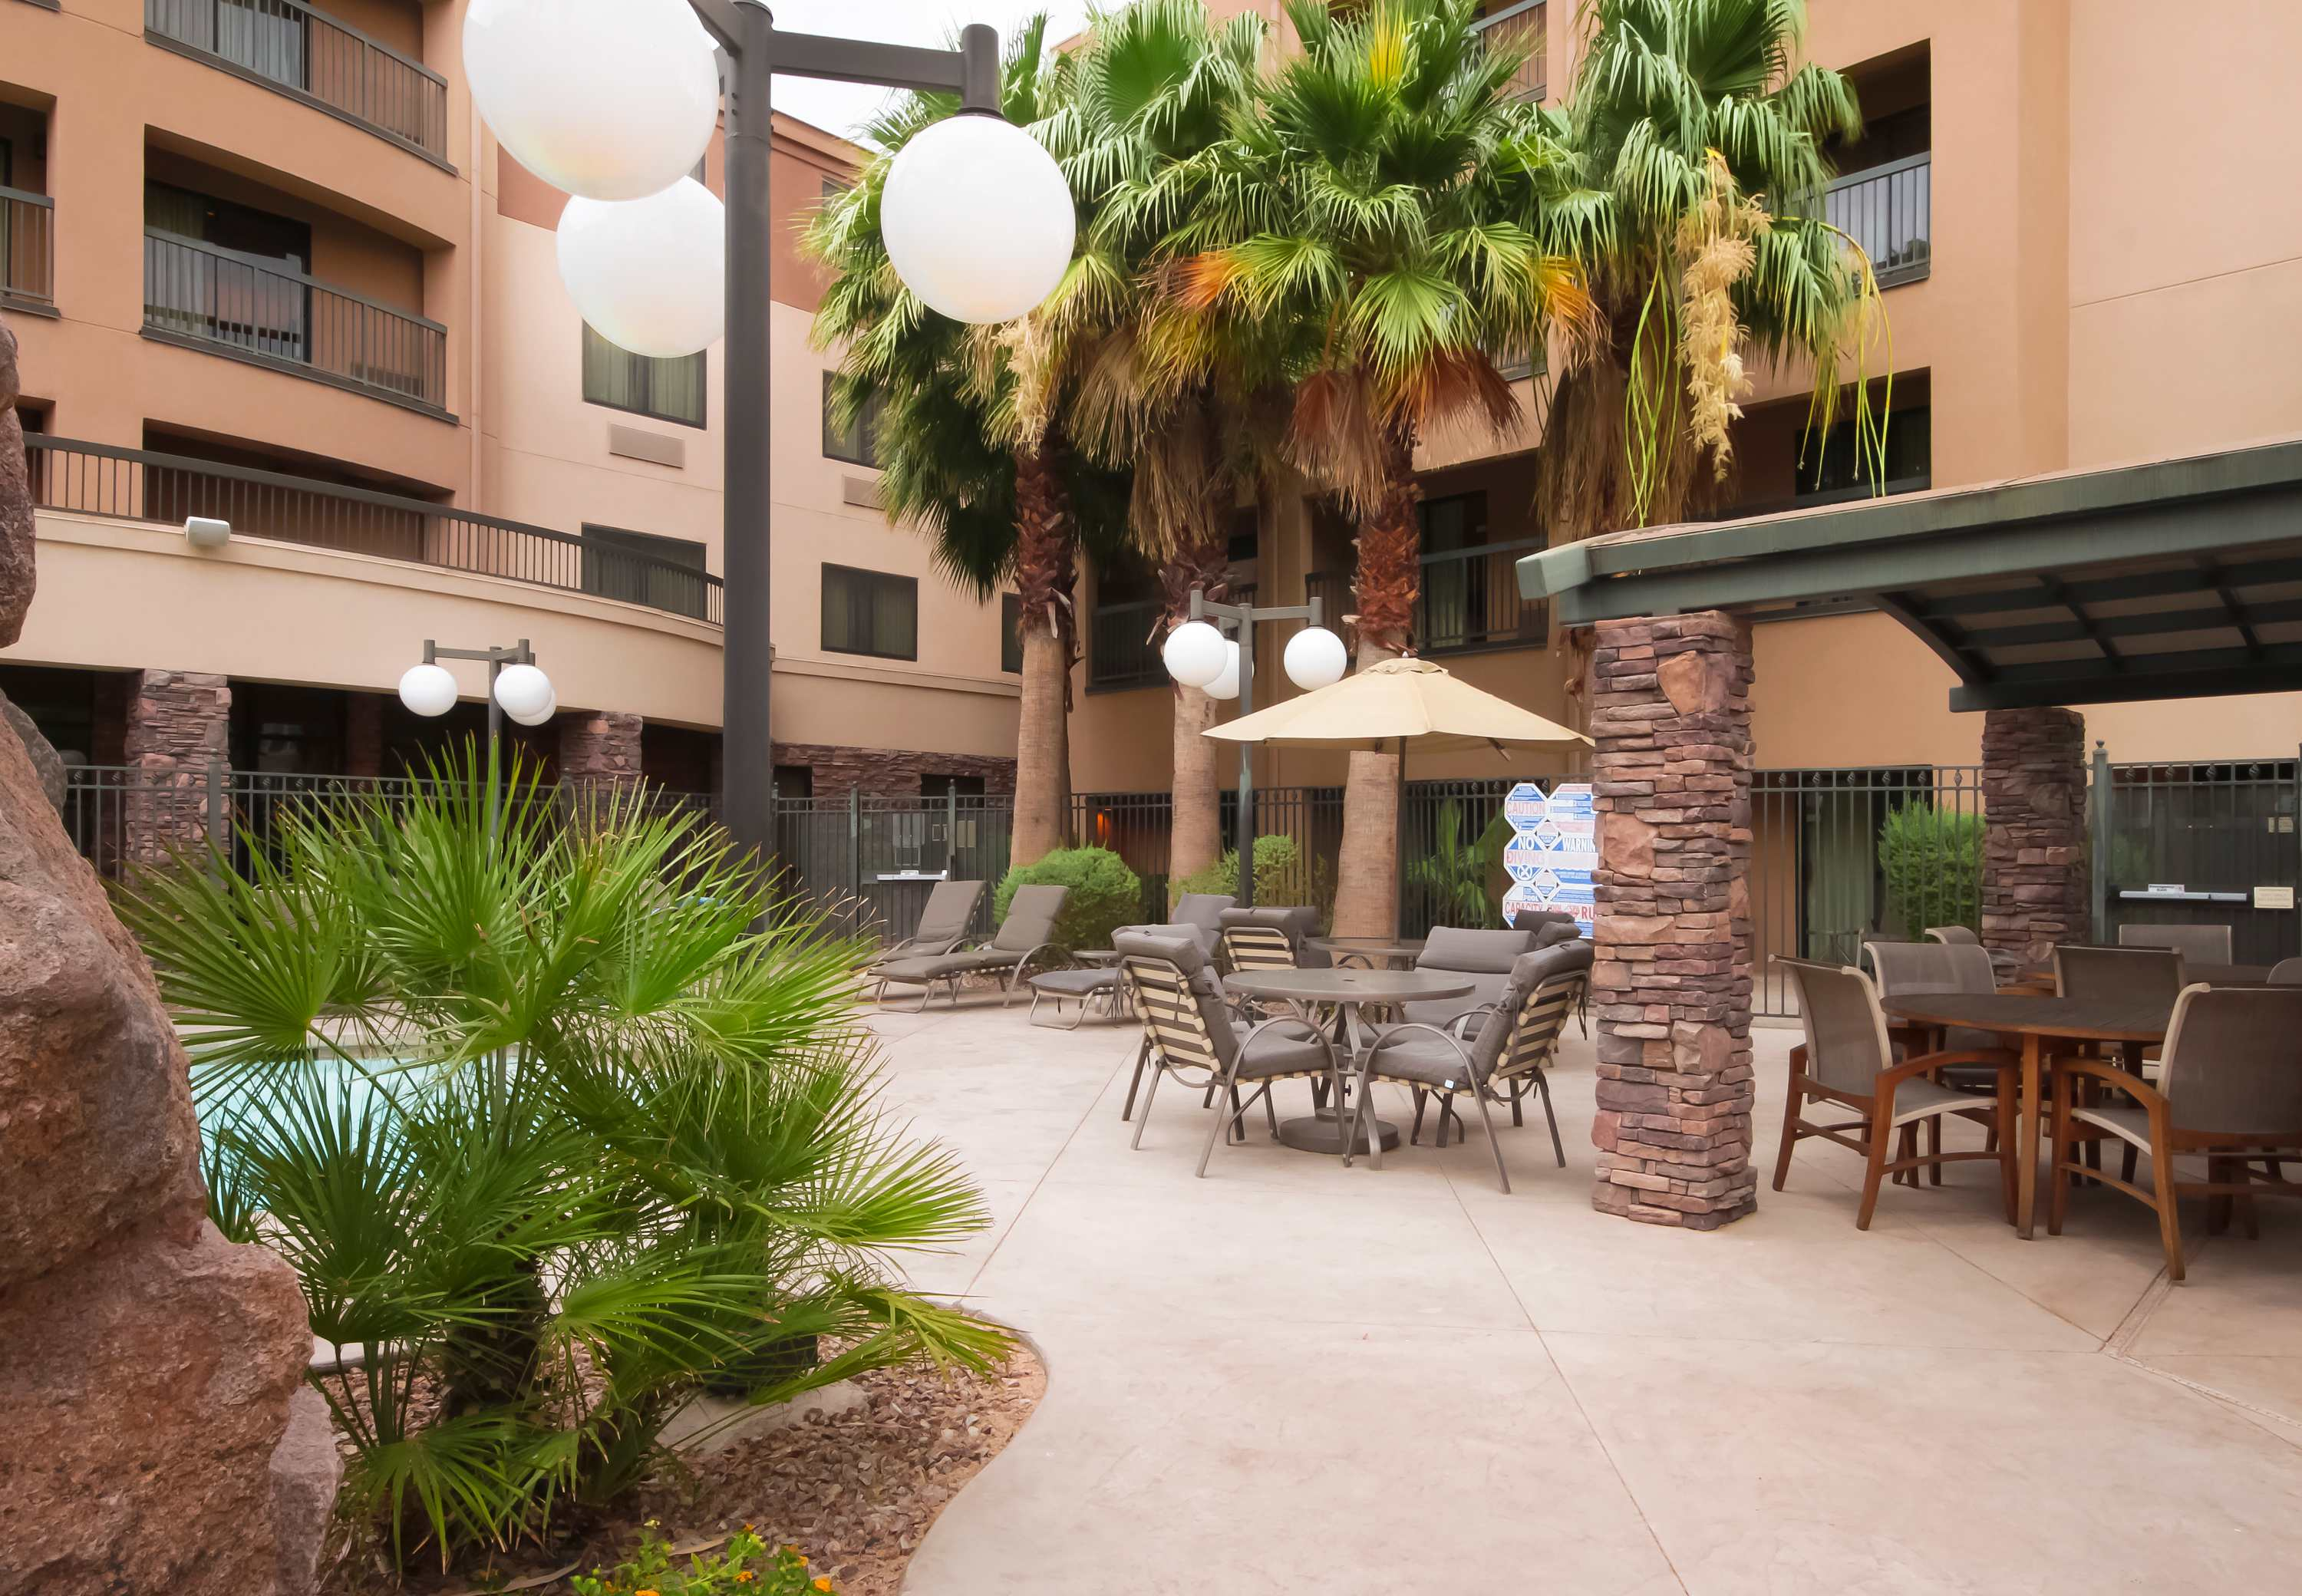 Courtyard by Marriott Las Vegas South image 11